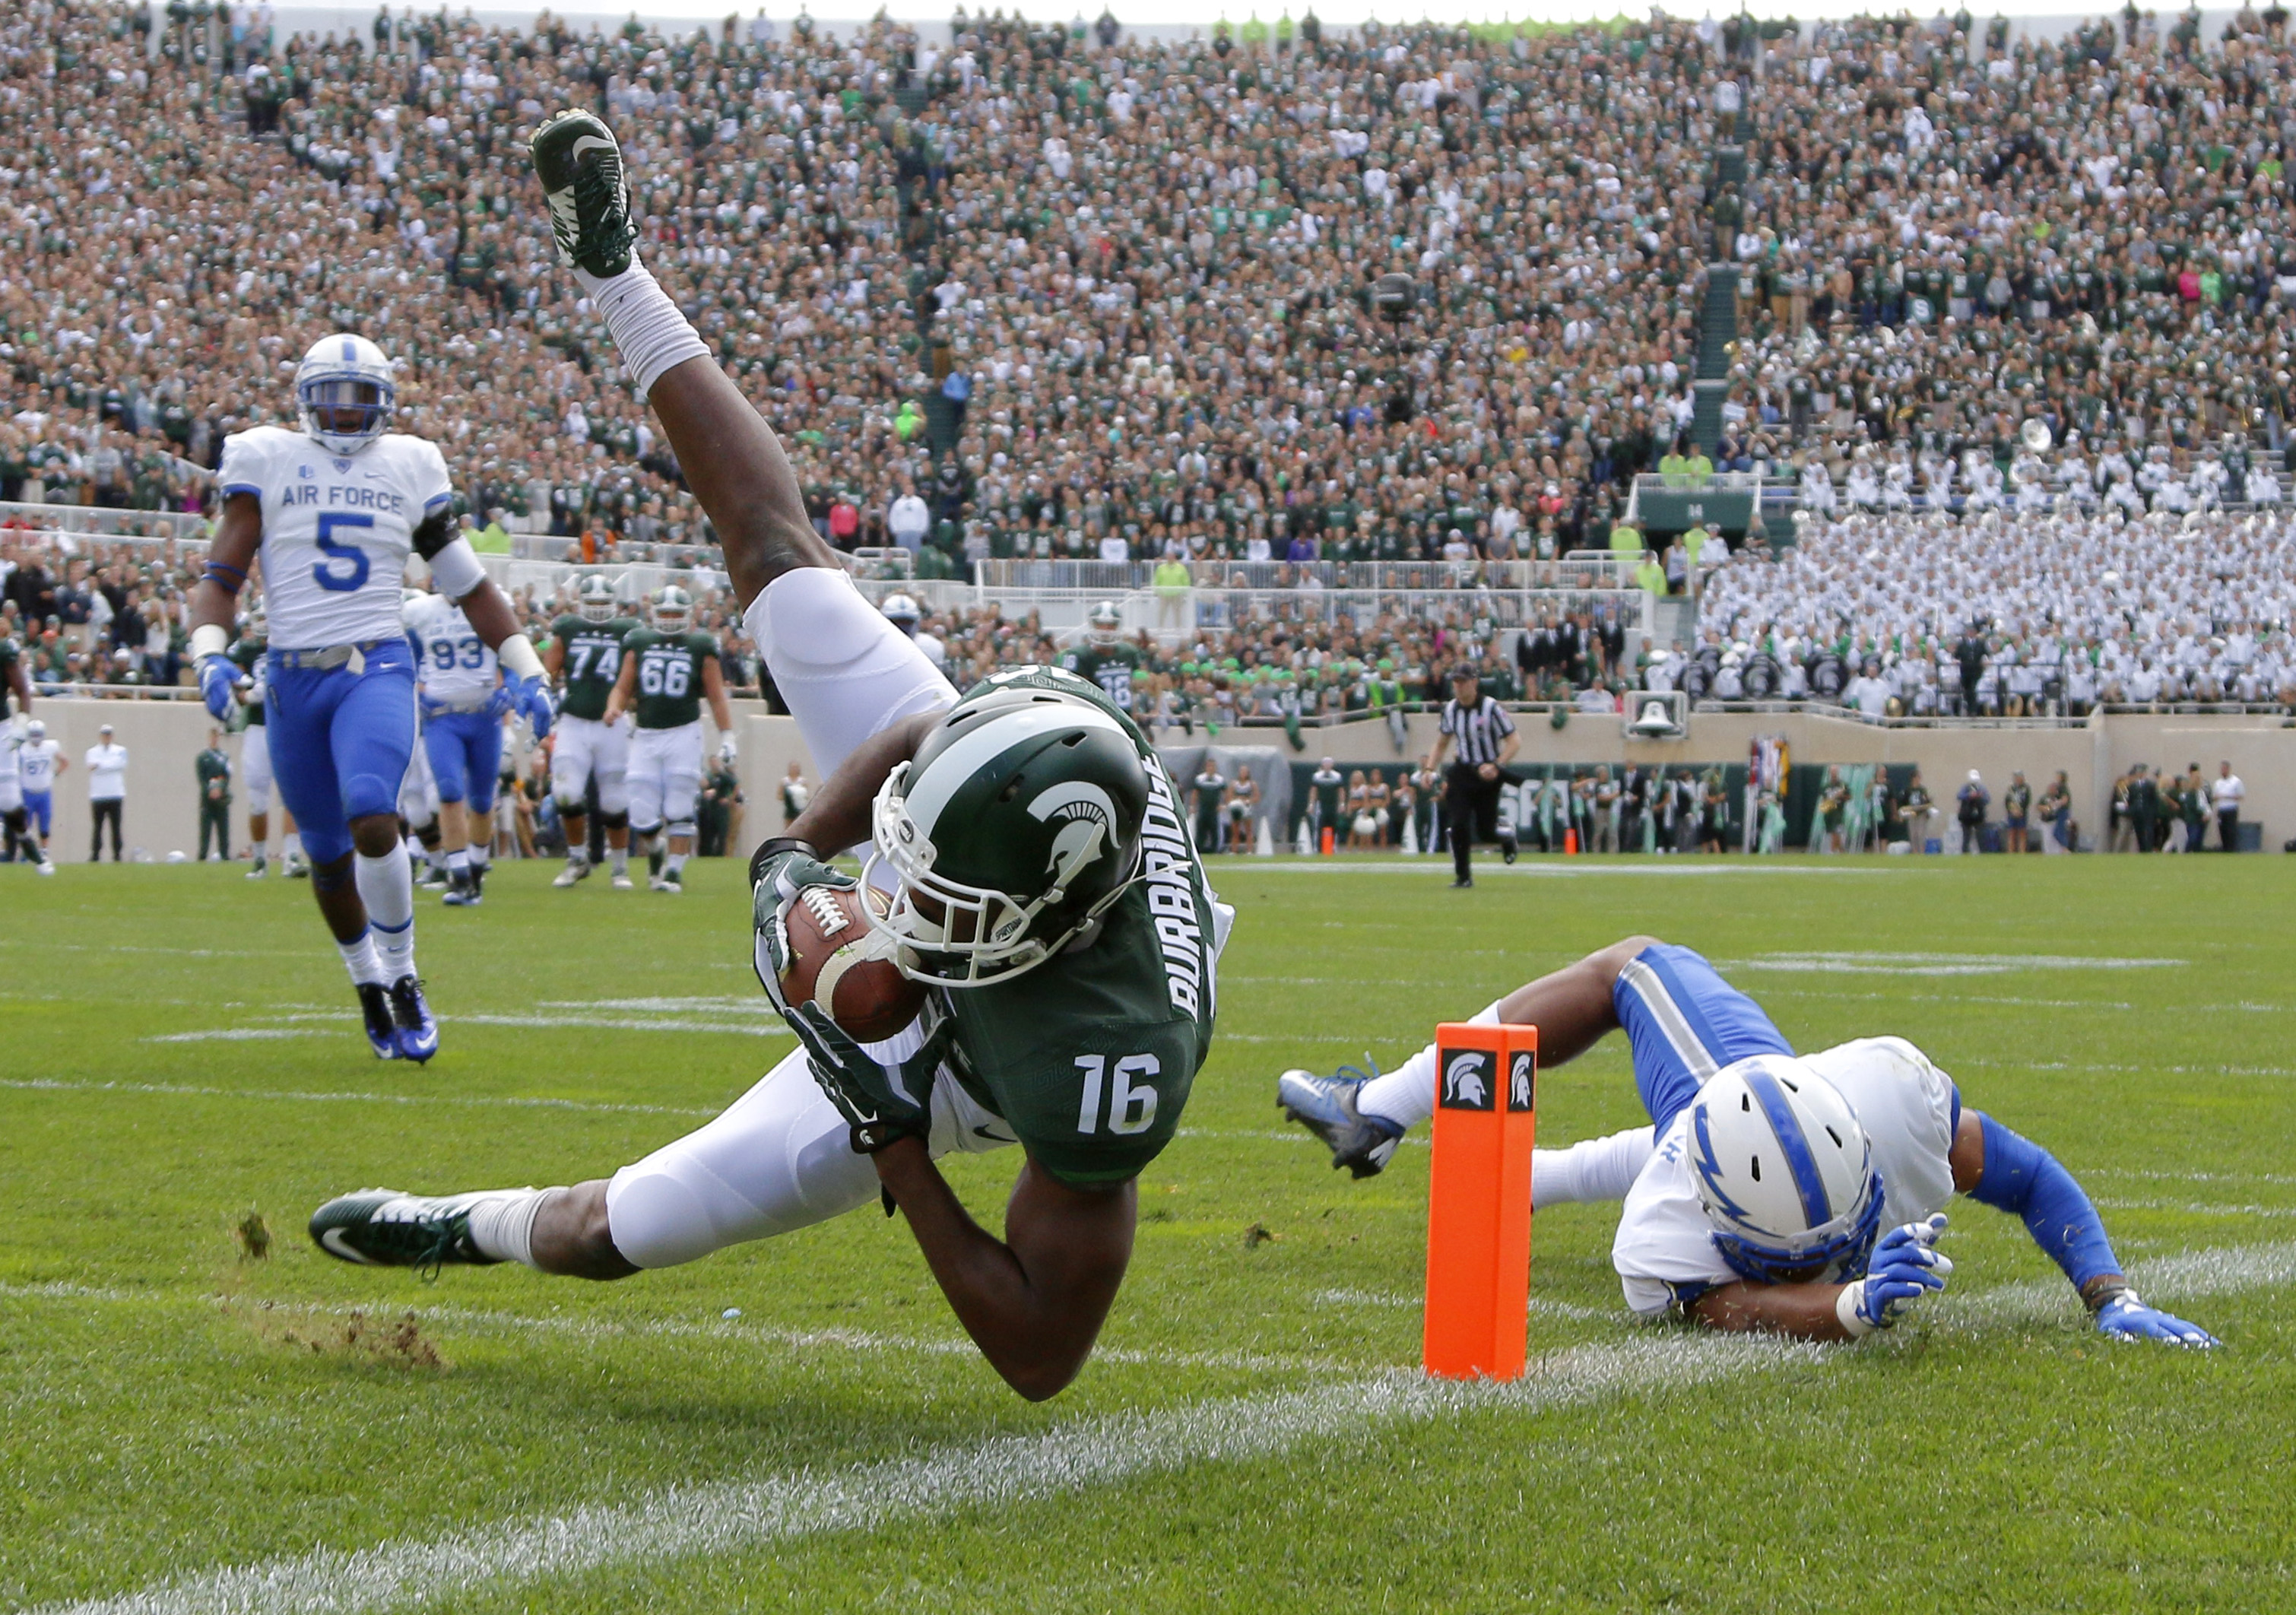 FILE - In this Saturday, Sept. 19, 2015, file photo, Michigan State's Aaron Burbridge (16) comes down with a reception for a touchdown against Air Force's Kalon Baker, right, and Dexter Walker (5) during an NCAA college football game in East Lansing, Mich